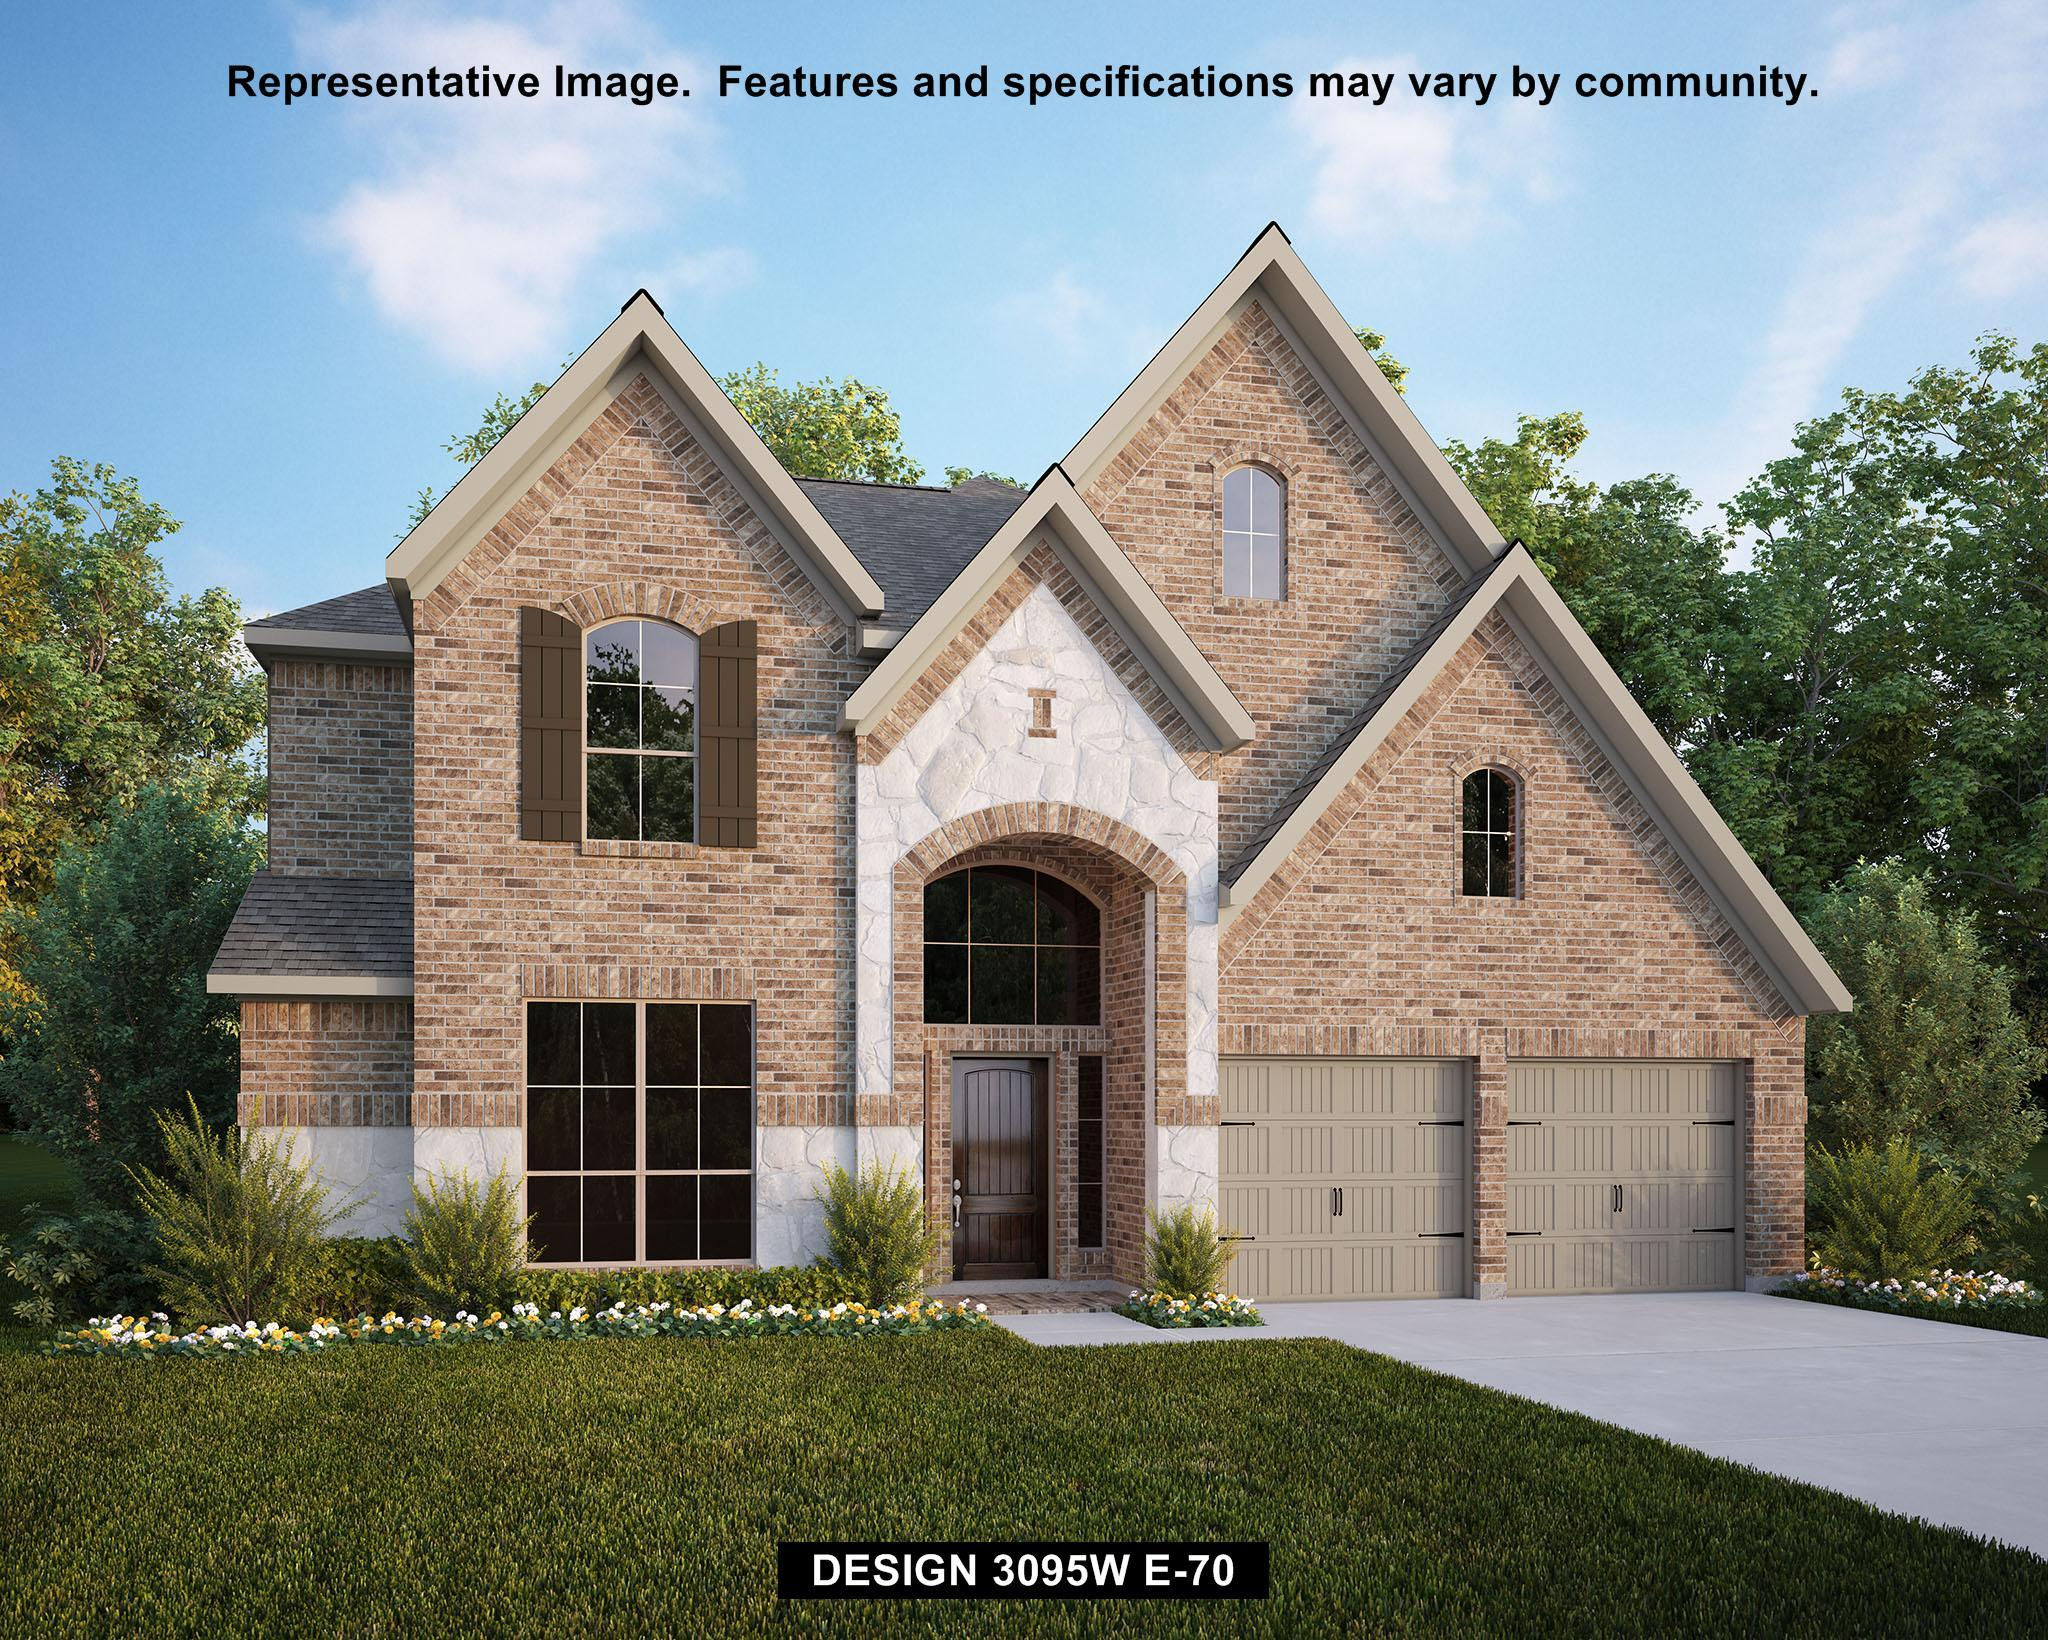 Single Family for Sale at Blanco Vista 50' - 3095w 120 Lacey Oak Loop San Marcos, Texas 78666 United States